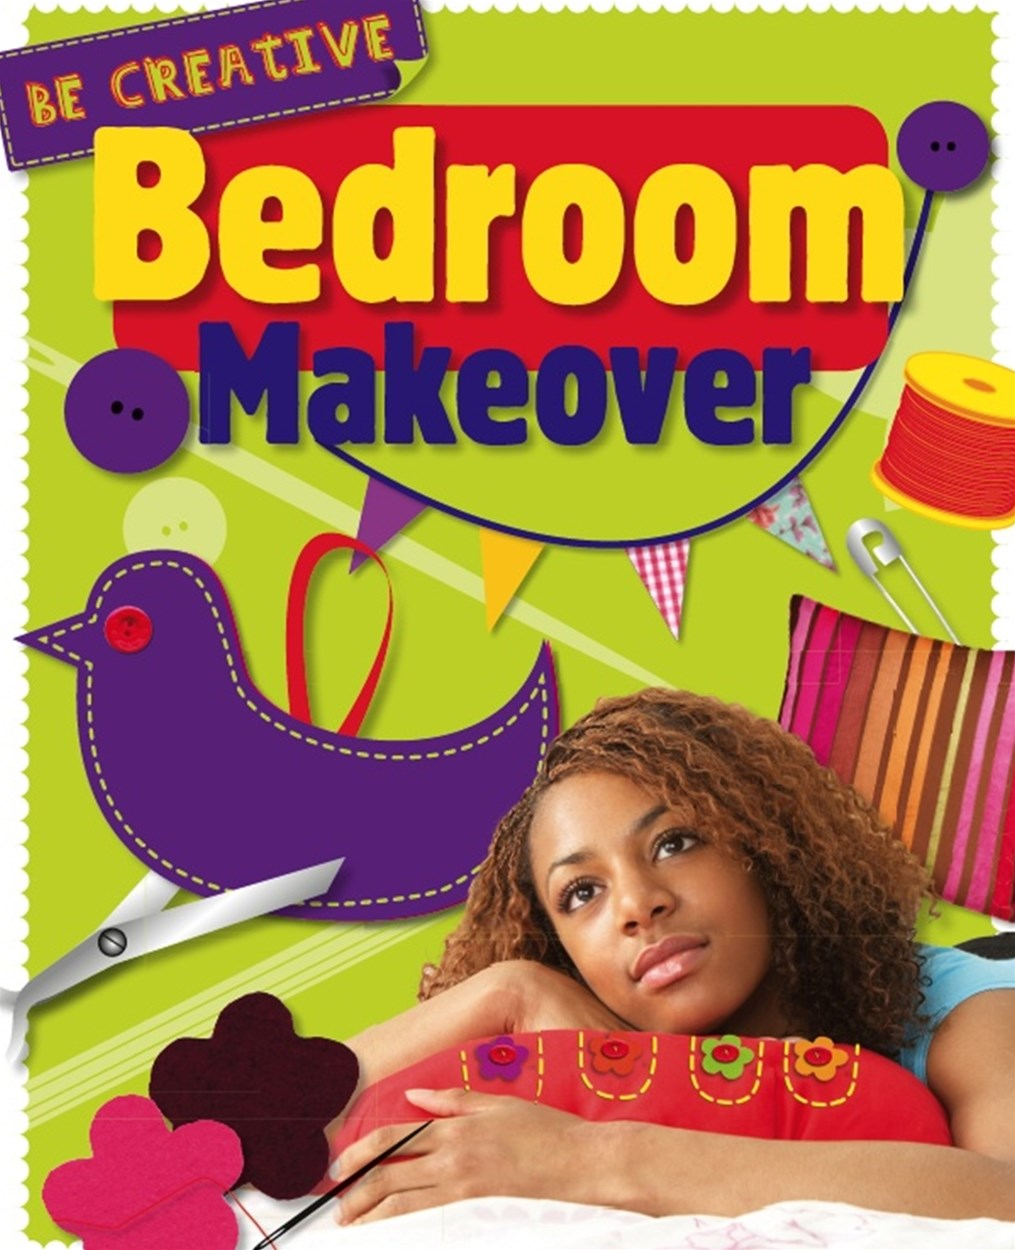 Be Creative: Bedroom Makeover